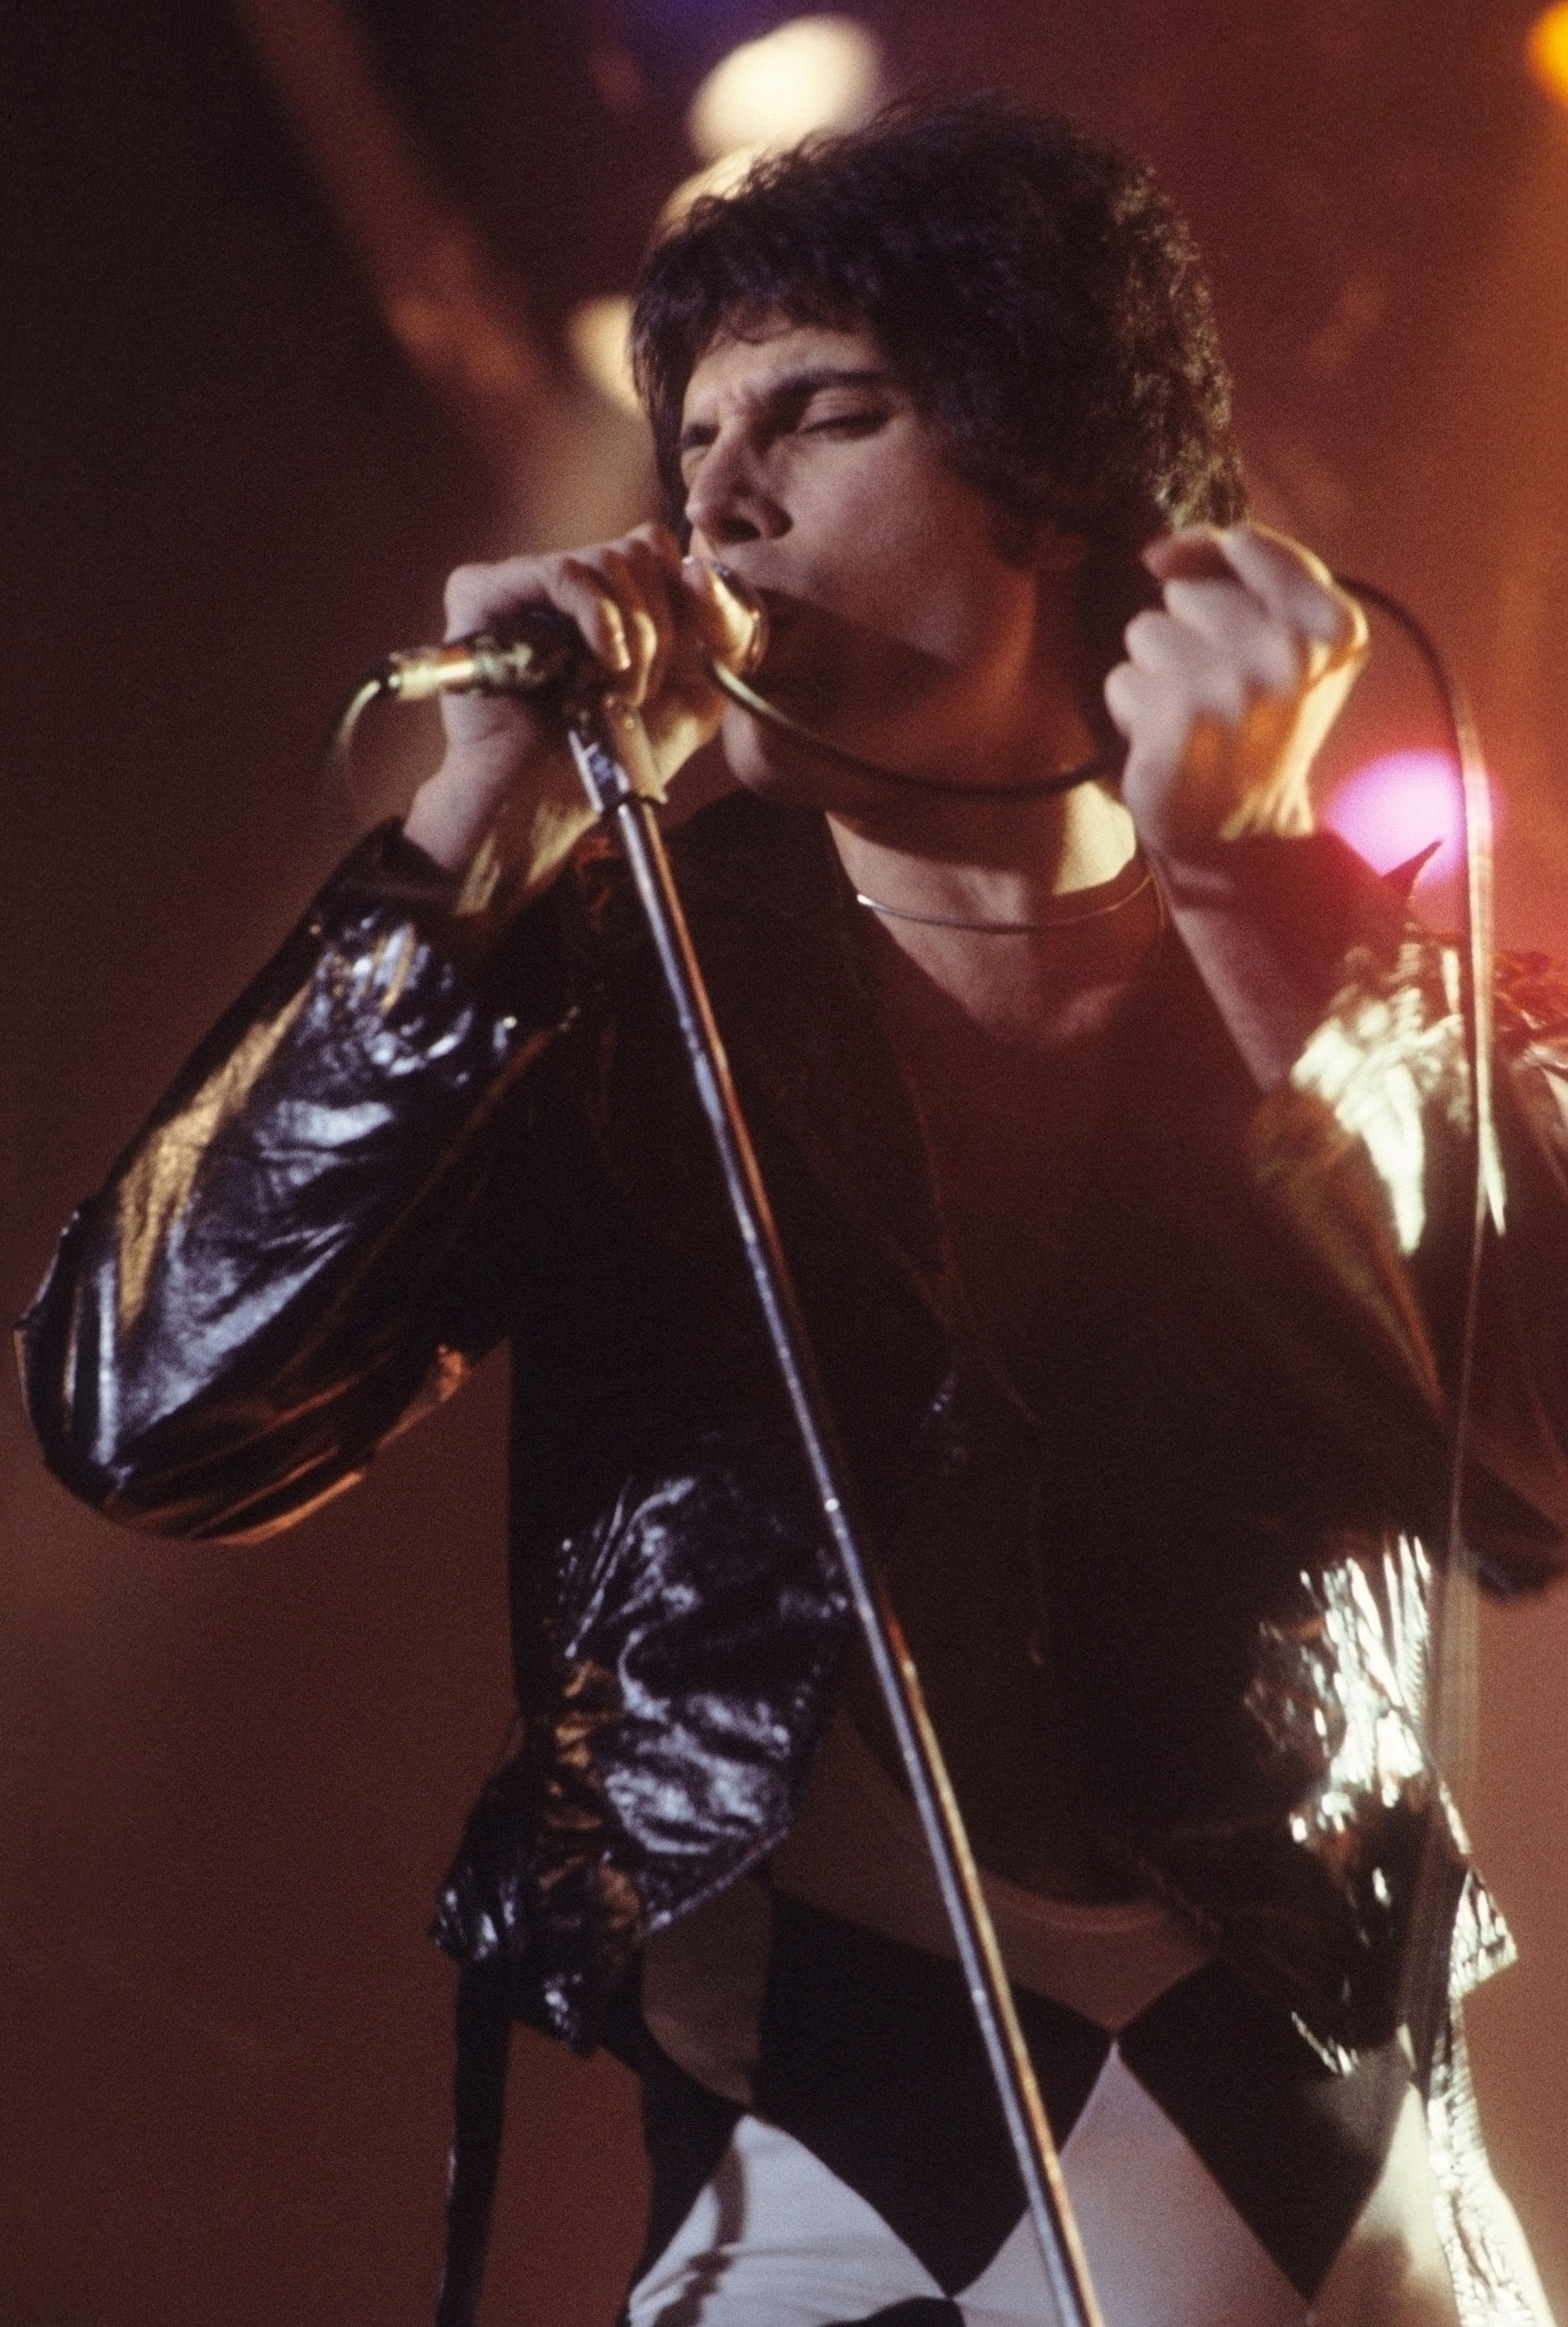 Freddie_Mercury_performing_in_New_Haven,_CT,_November_1977